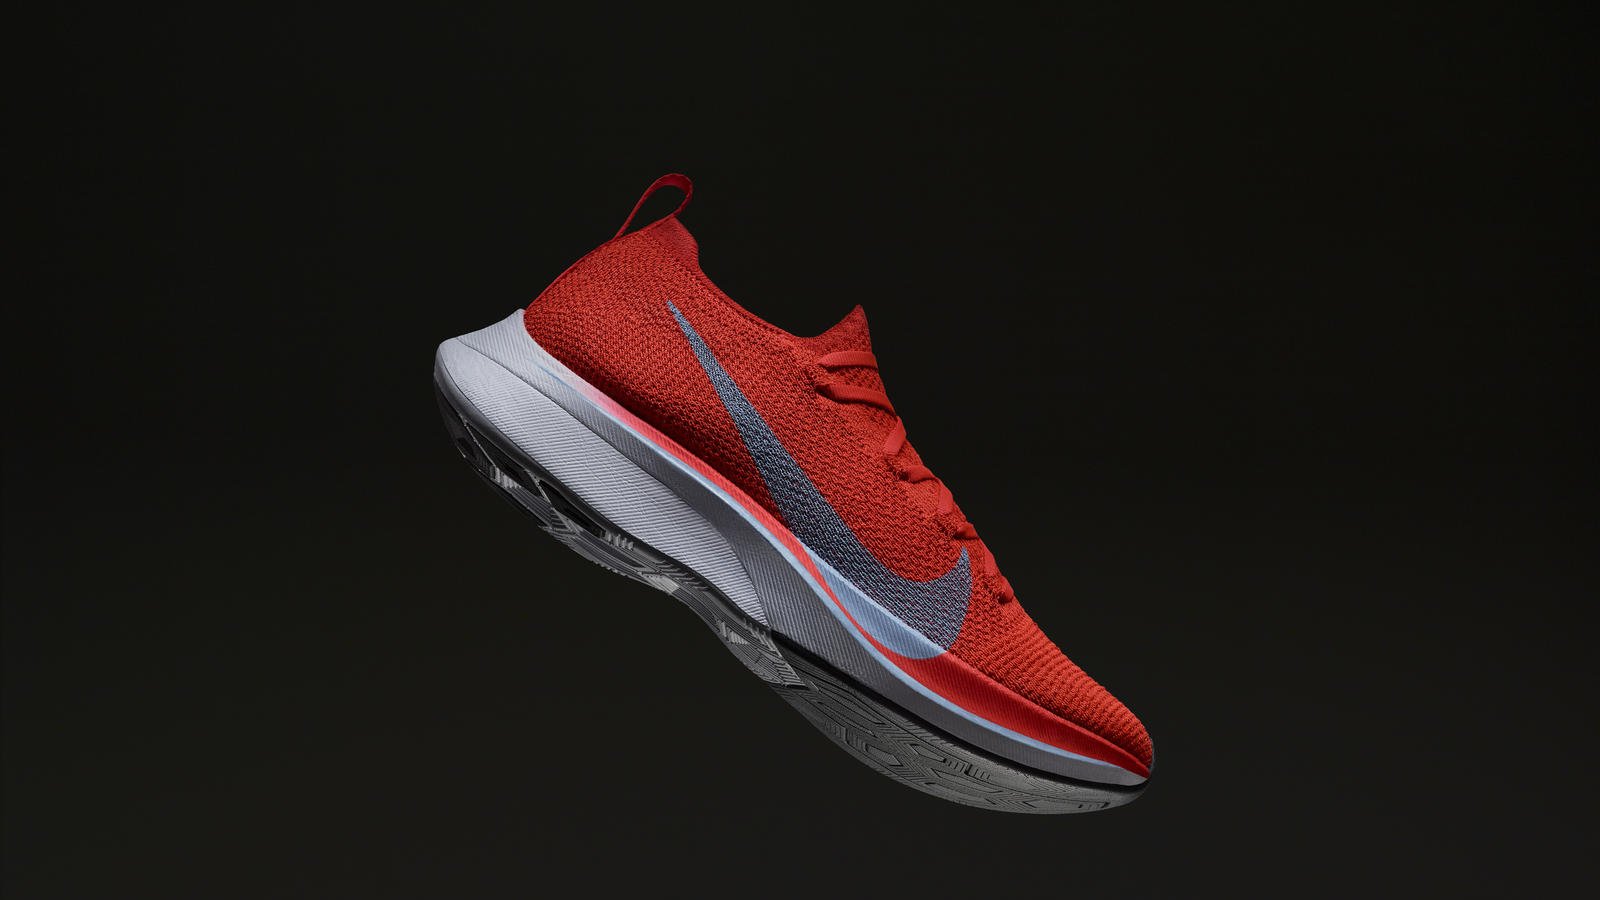 How to Get the Nike Zoom Vaporfly 4% 2